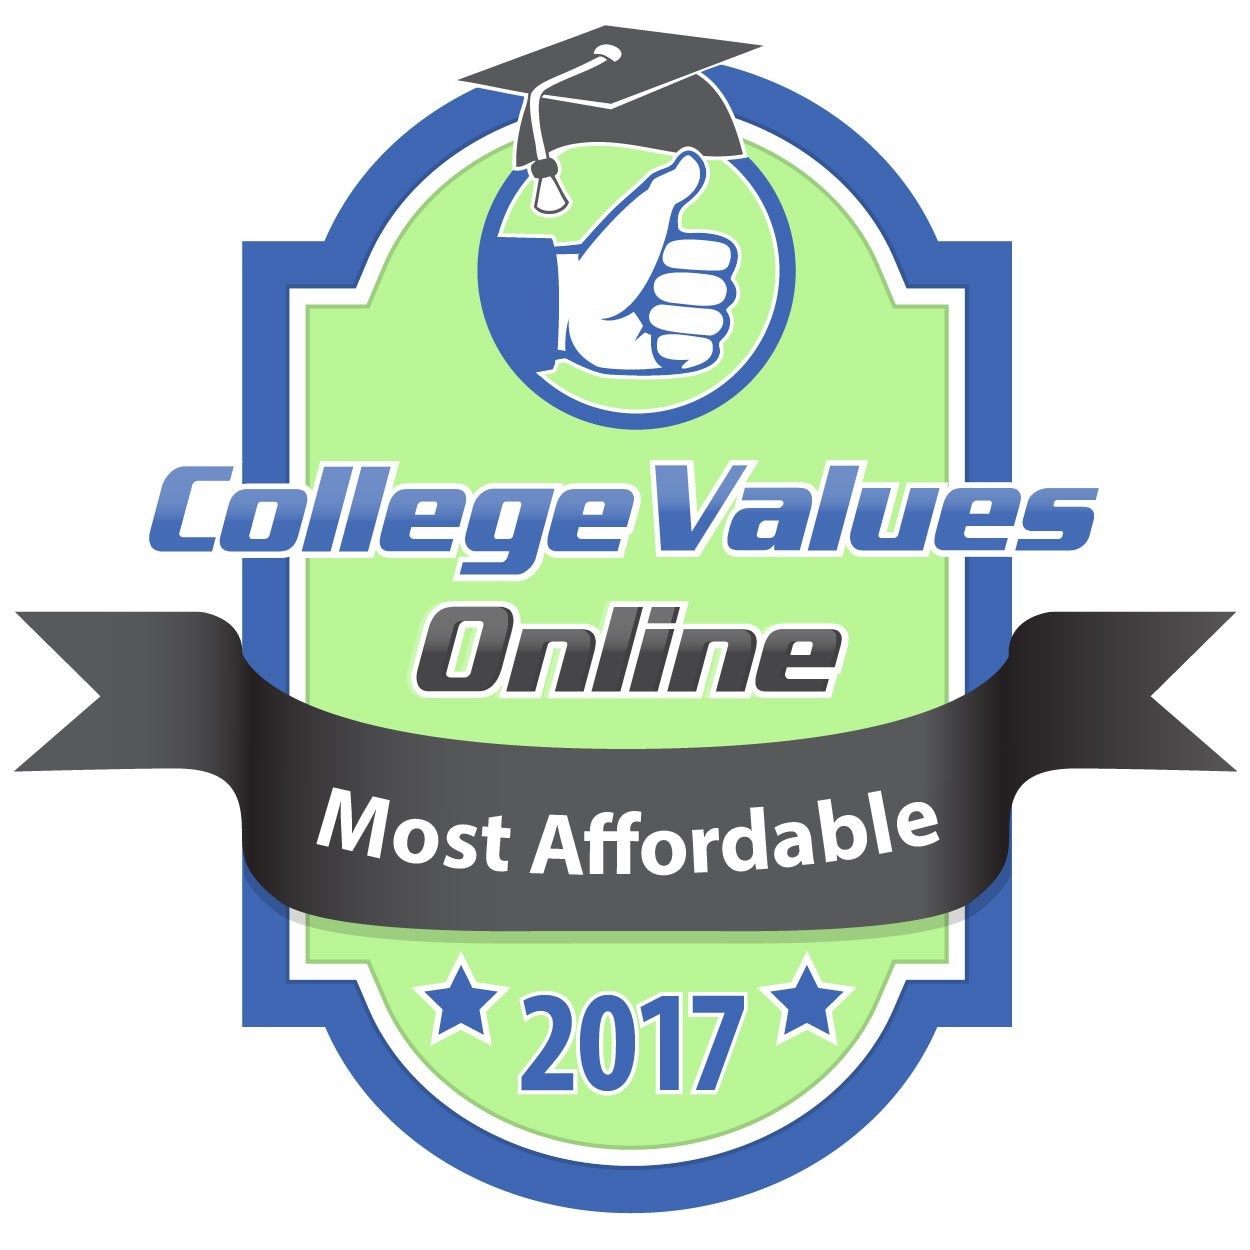 University of Massachusetts Boston was ranked #45. Our editors noted that this is one of the best values for an online DNP degree.